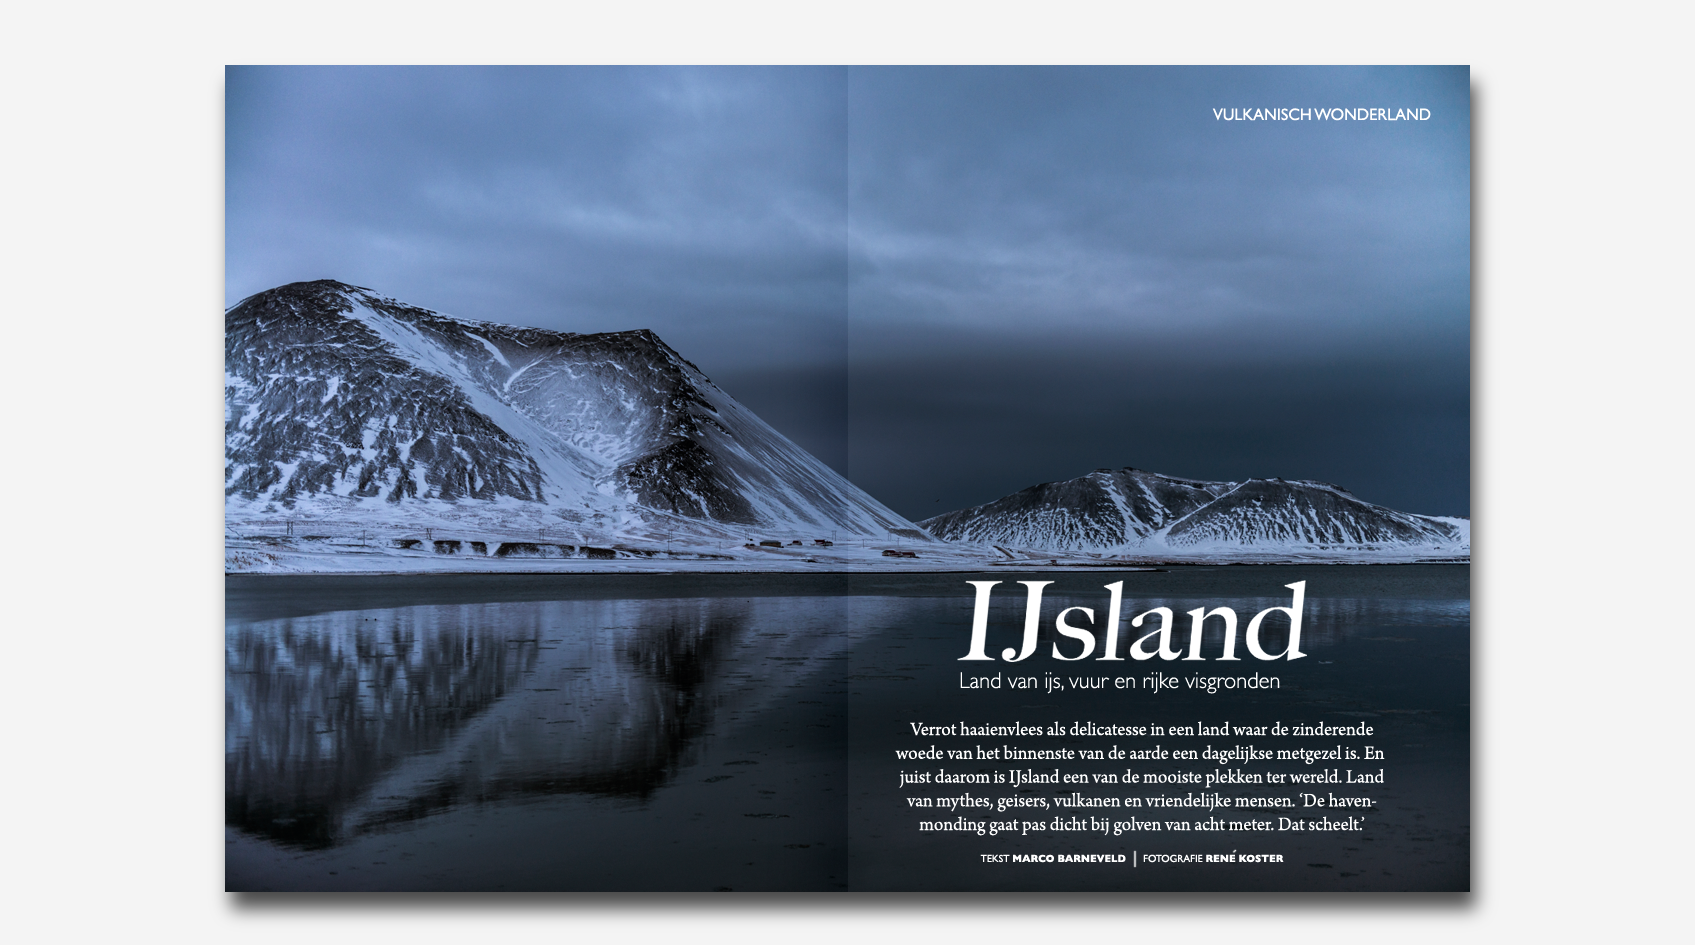 rene_koster_iceland_01A.png